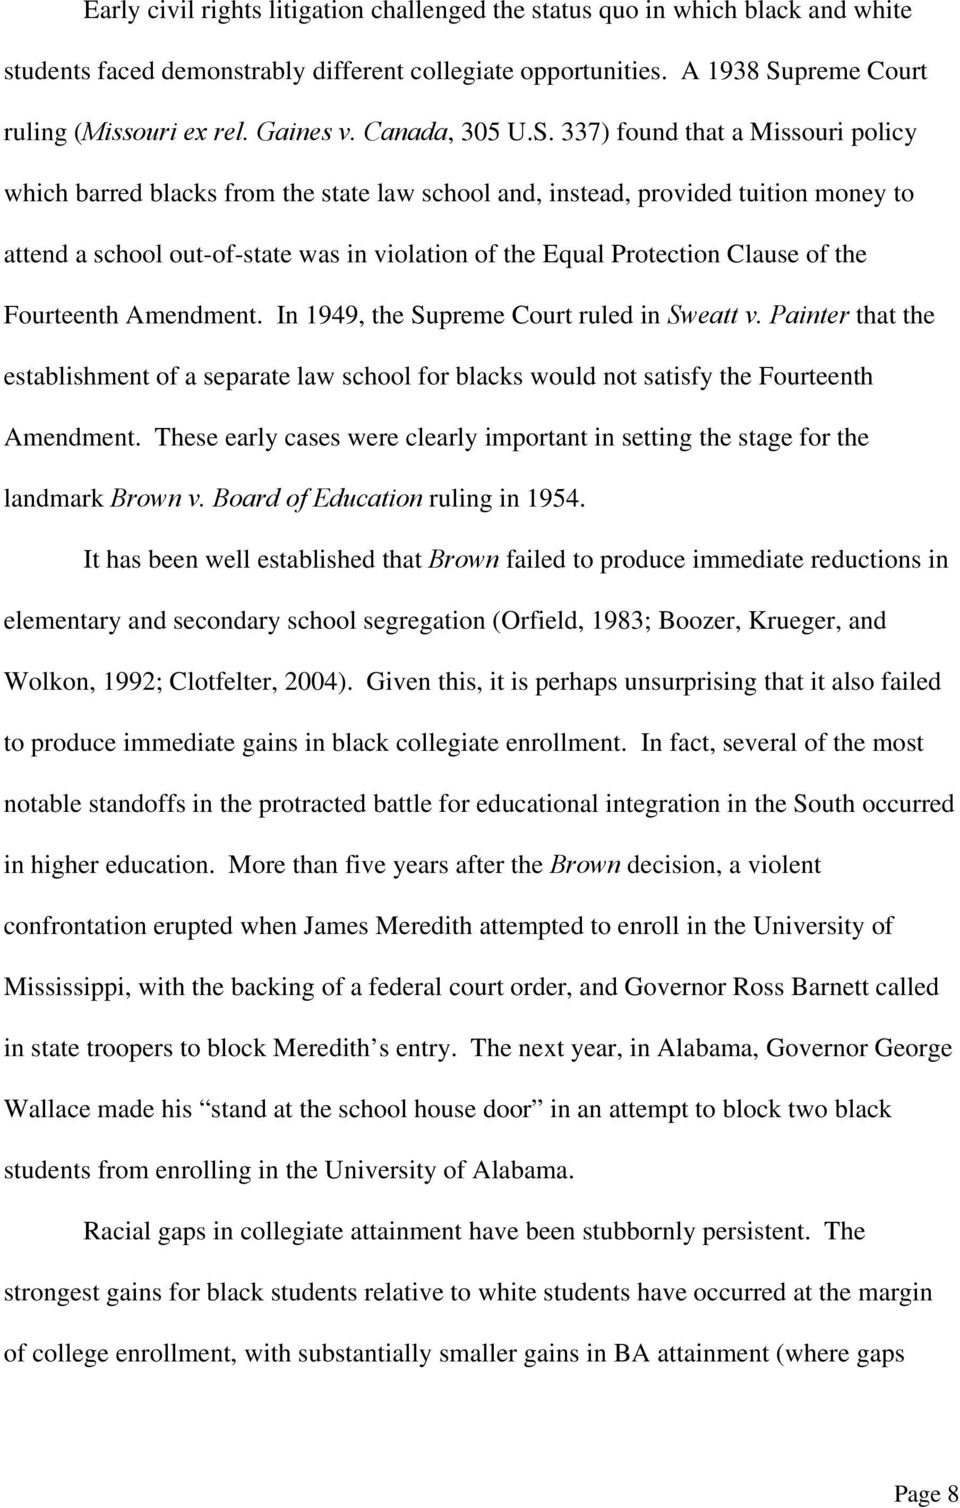 337) found that a Missouri policy which barred blacks from the state law school and, instead, provided tuition money to attend a school out-of-state was in violation of the Equal Protection Clause of